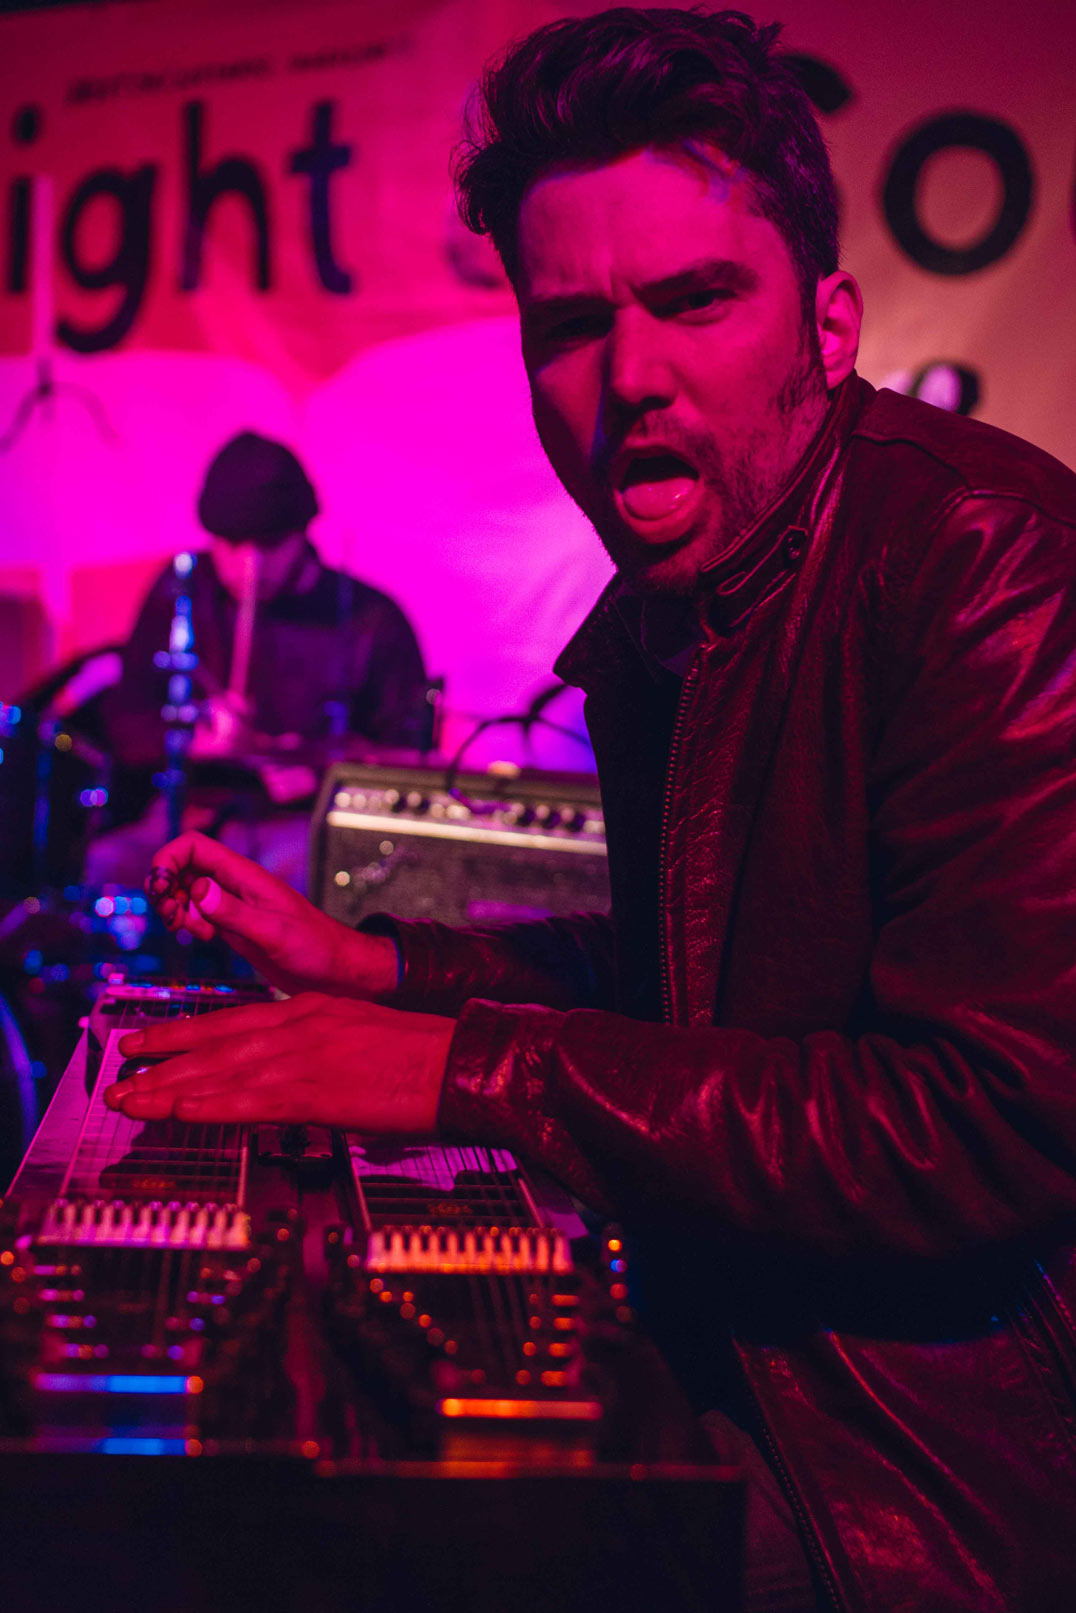 Sight & Sound: Reigning Sound, Natural Child, Tijuana Panthers, and More.: JuxtapozProjectsSXSW-(16-of-20).jpg